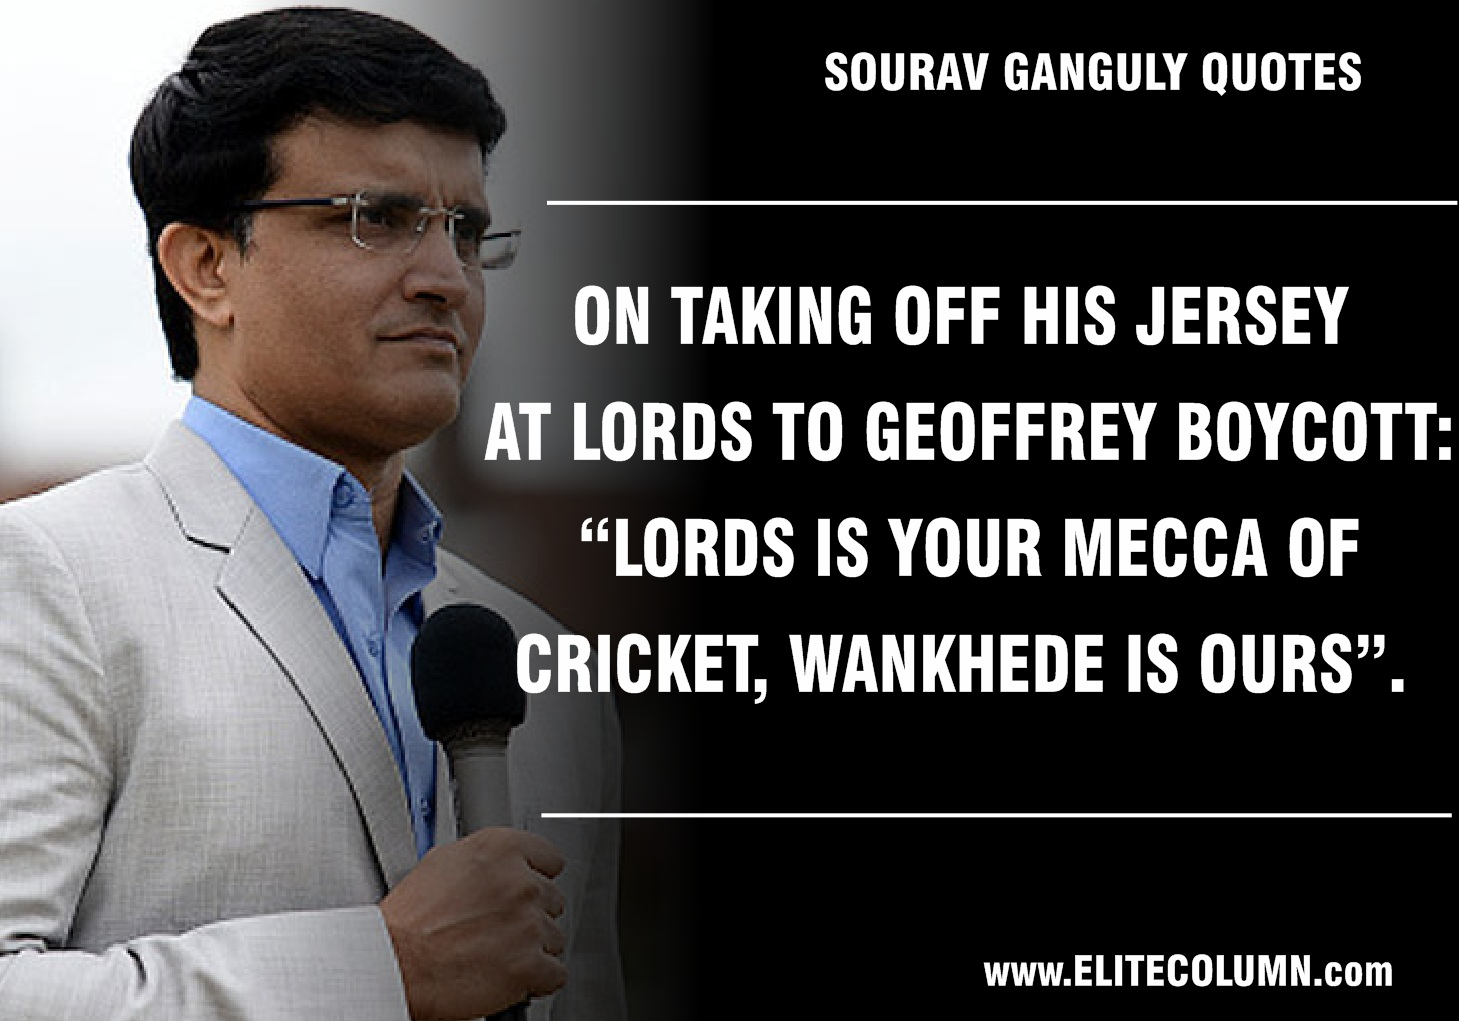 Sourav Ganguly Quotes (4)